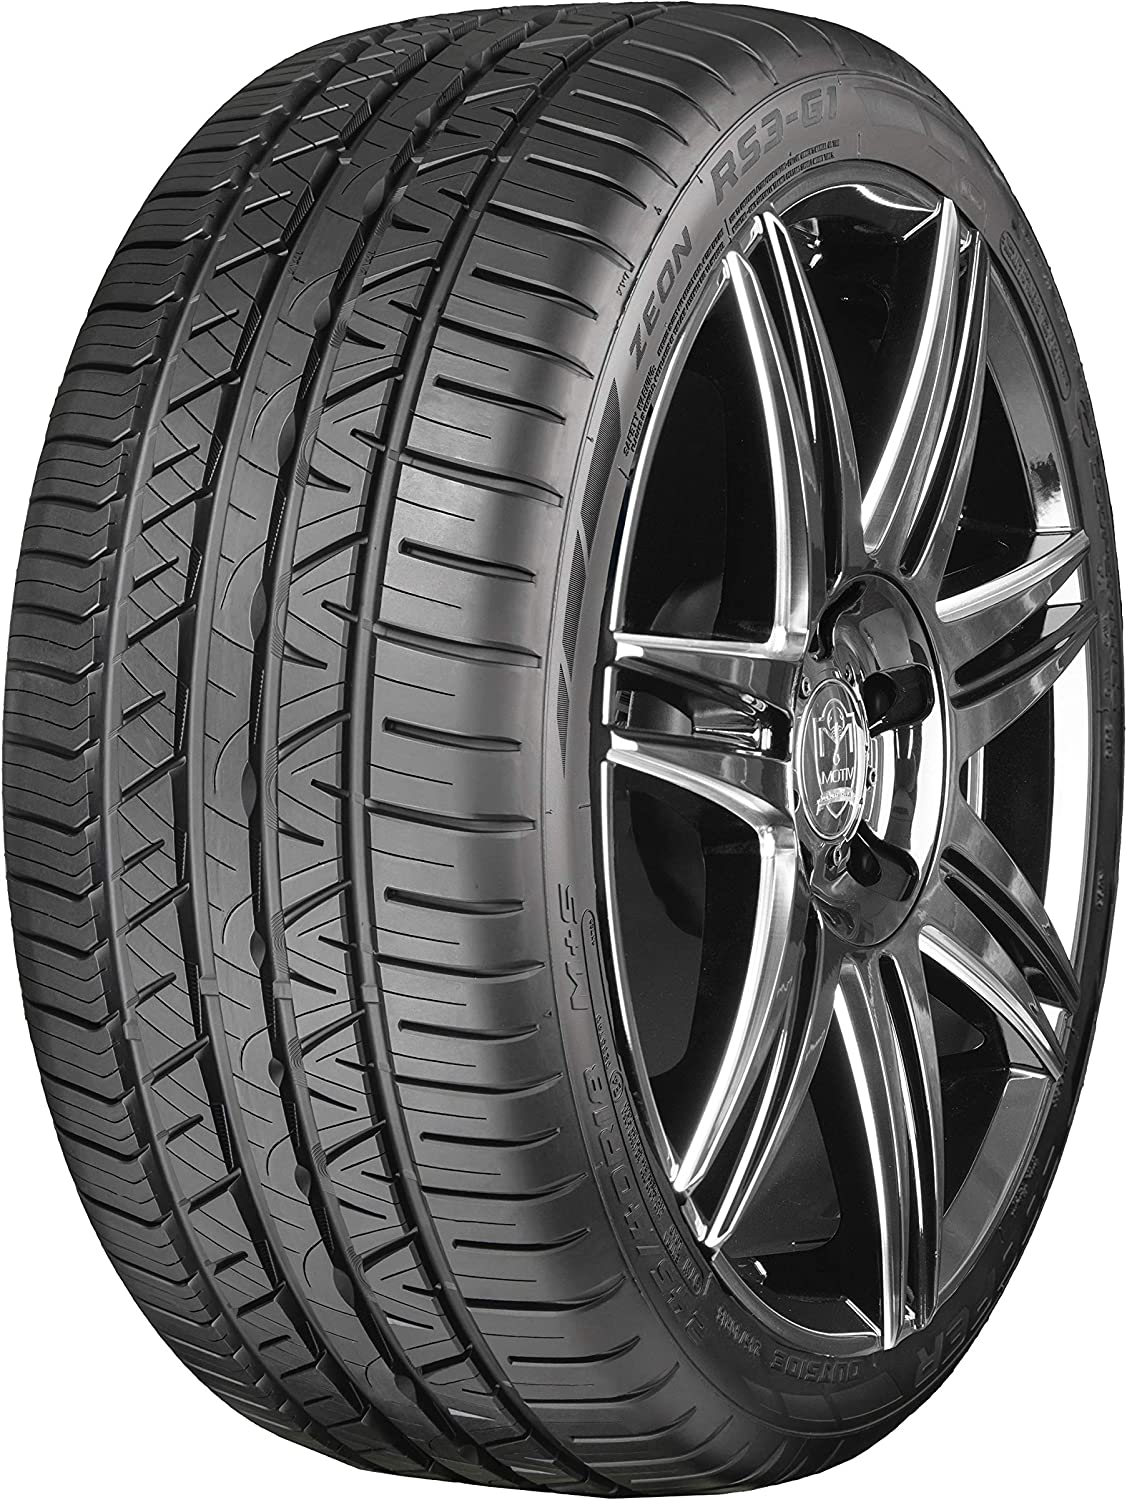 Cooper Zeon RS3-G1 All-Season Tire